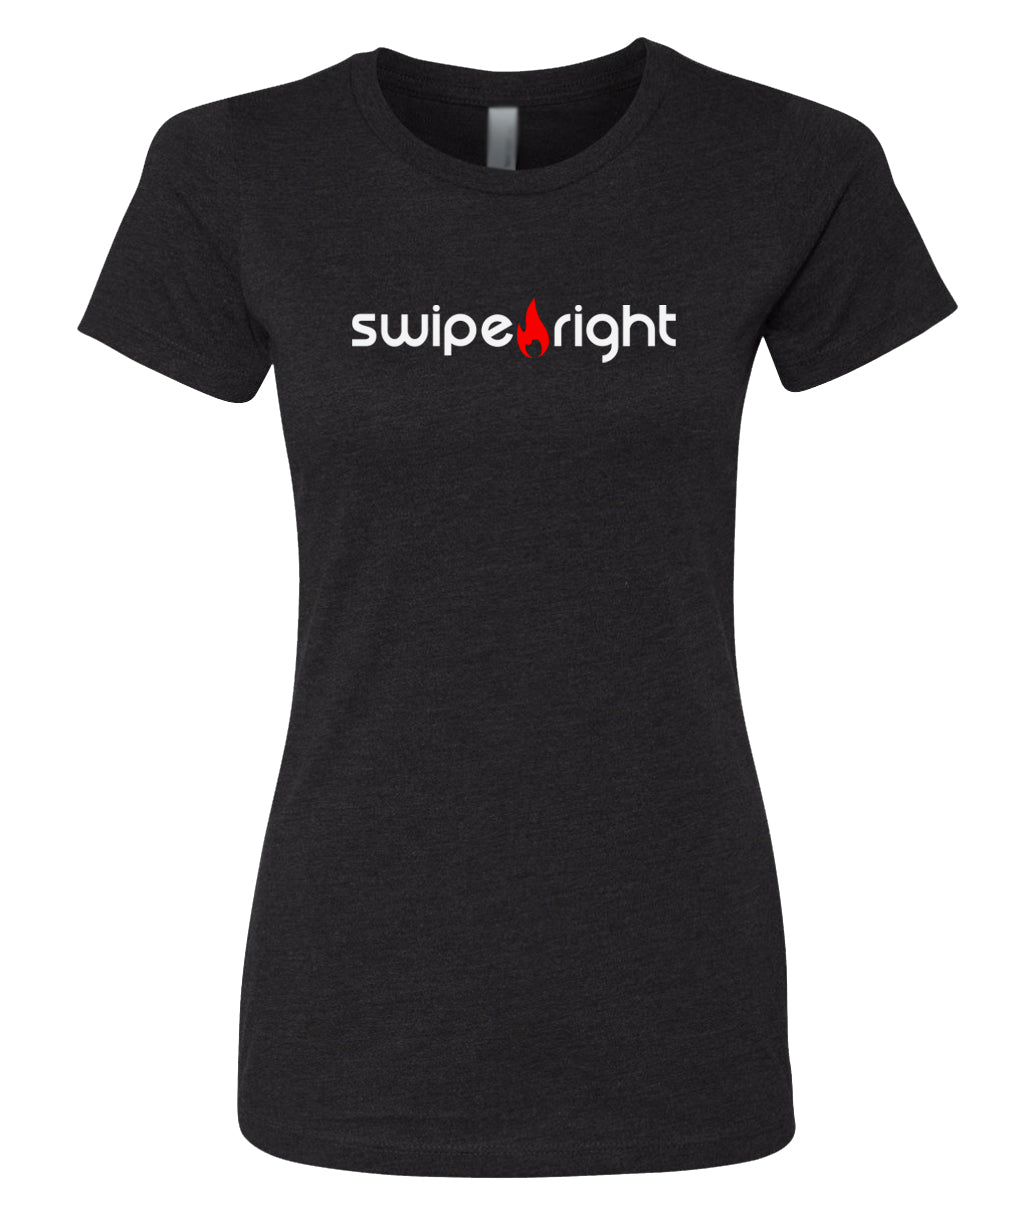 black swipe right crewneck tees for women